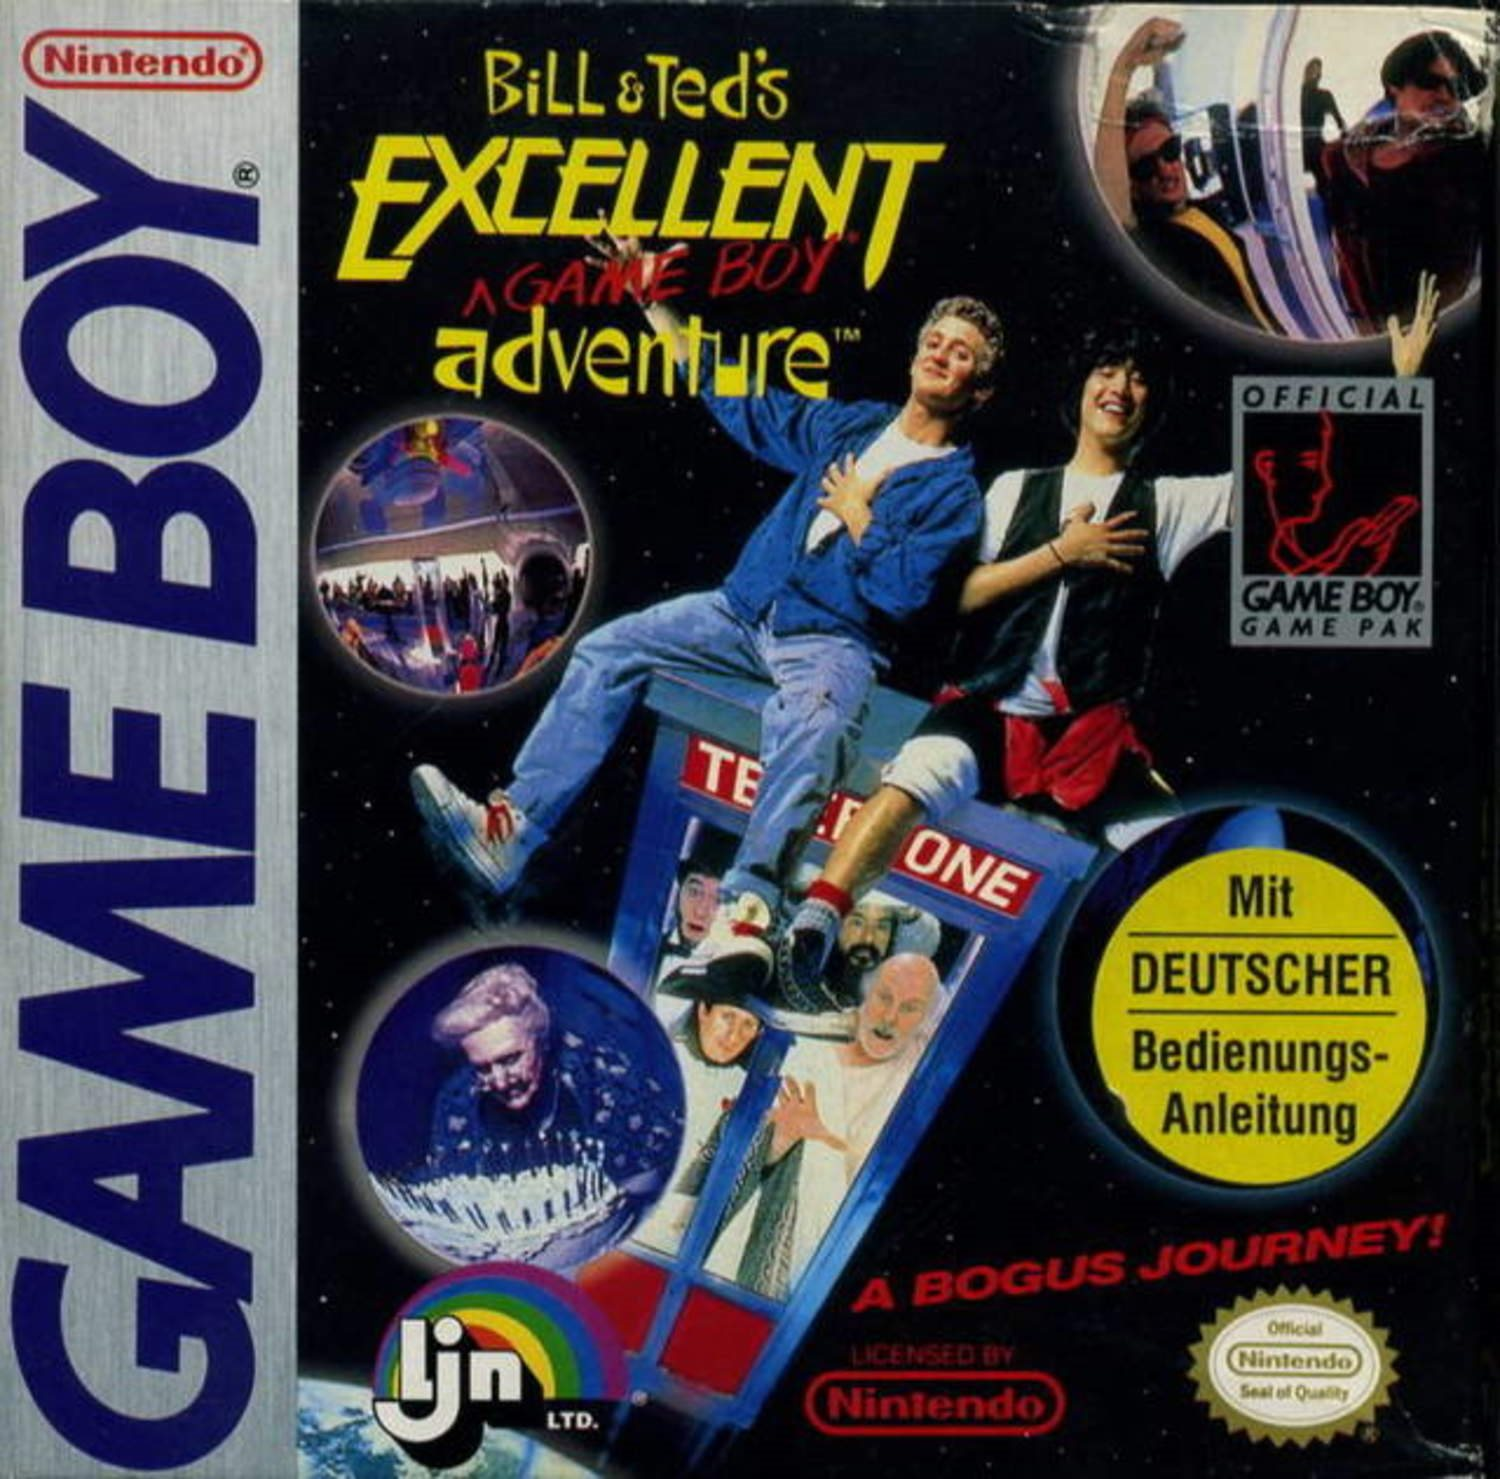 Bill and Teds Excellent Gameboy Adventure - Gameboy